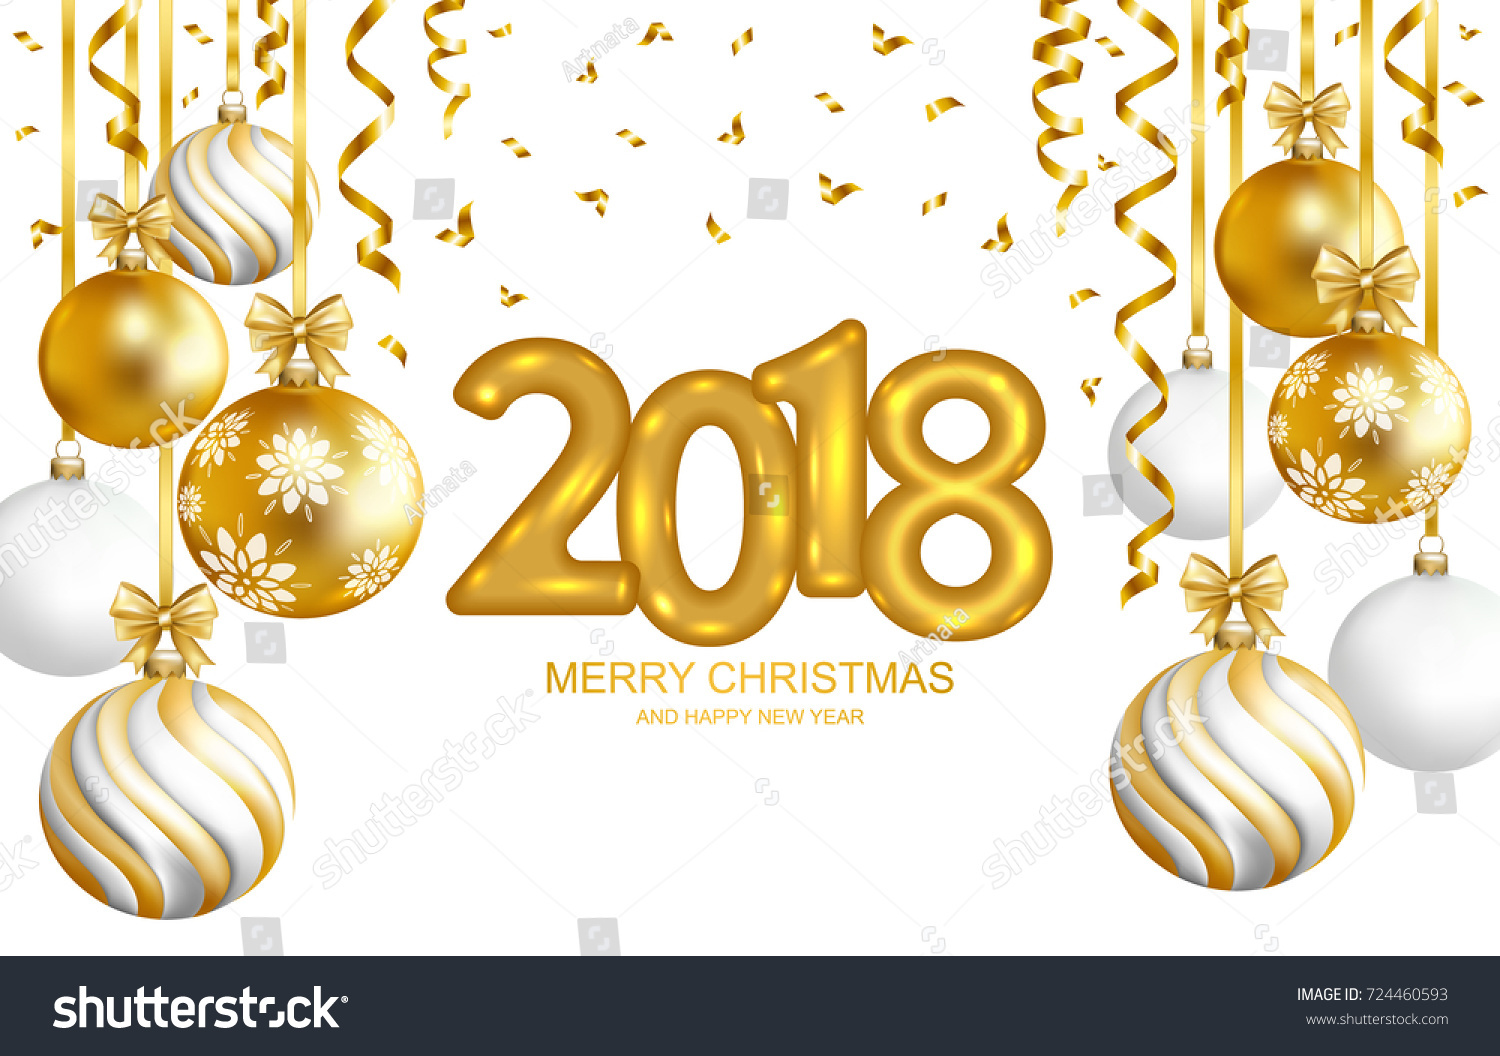 2018 marry christmas and happy new year card with christmas balls and serpentine gold text